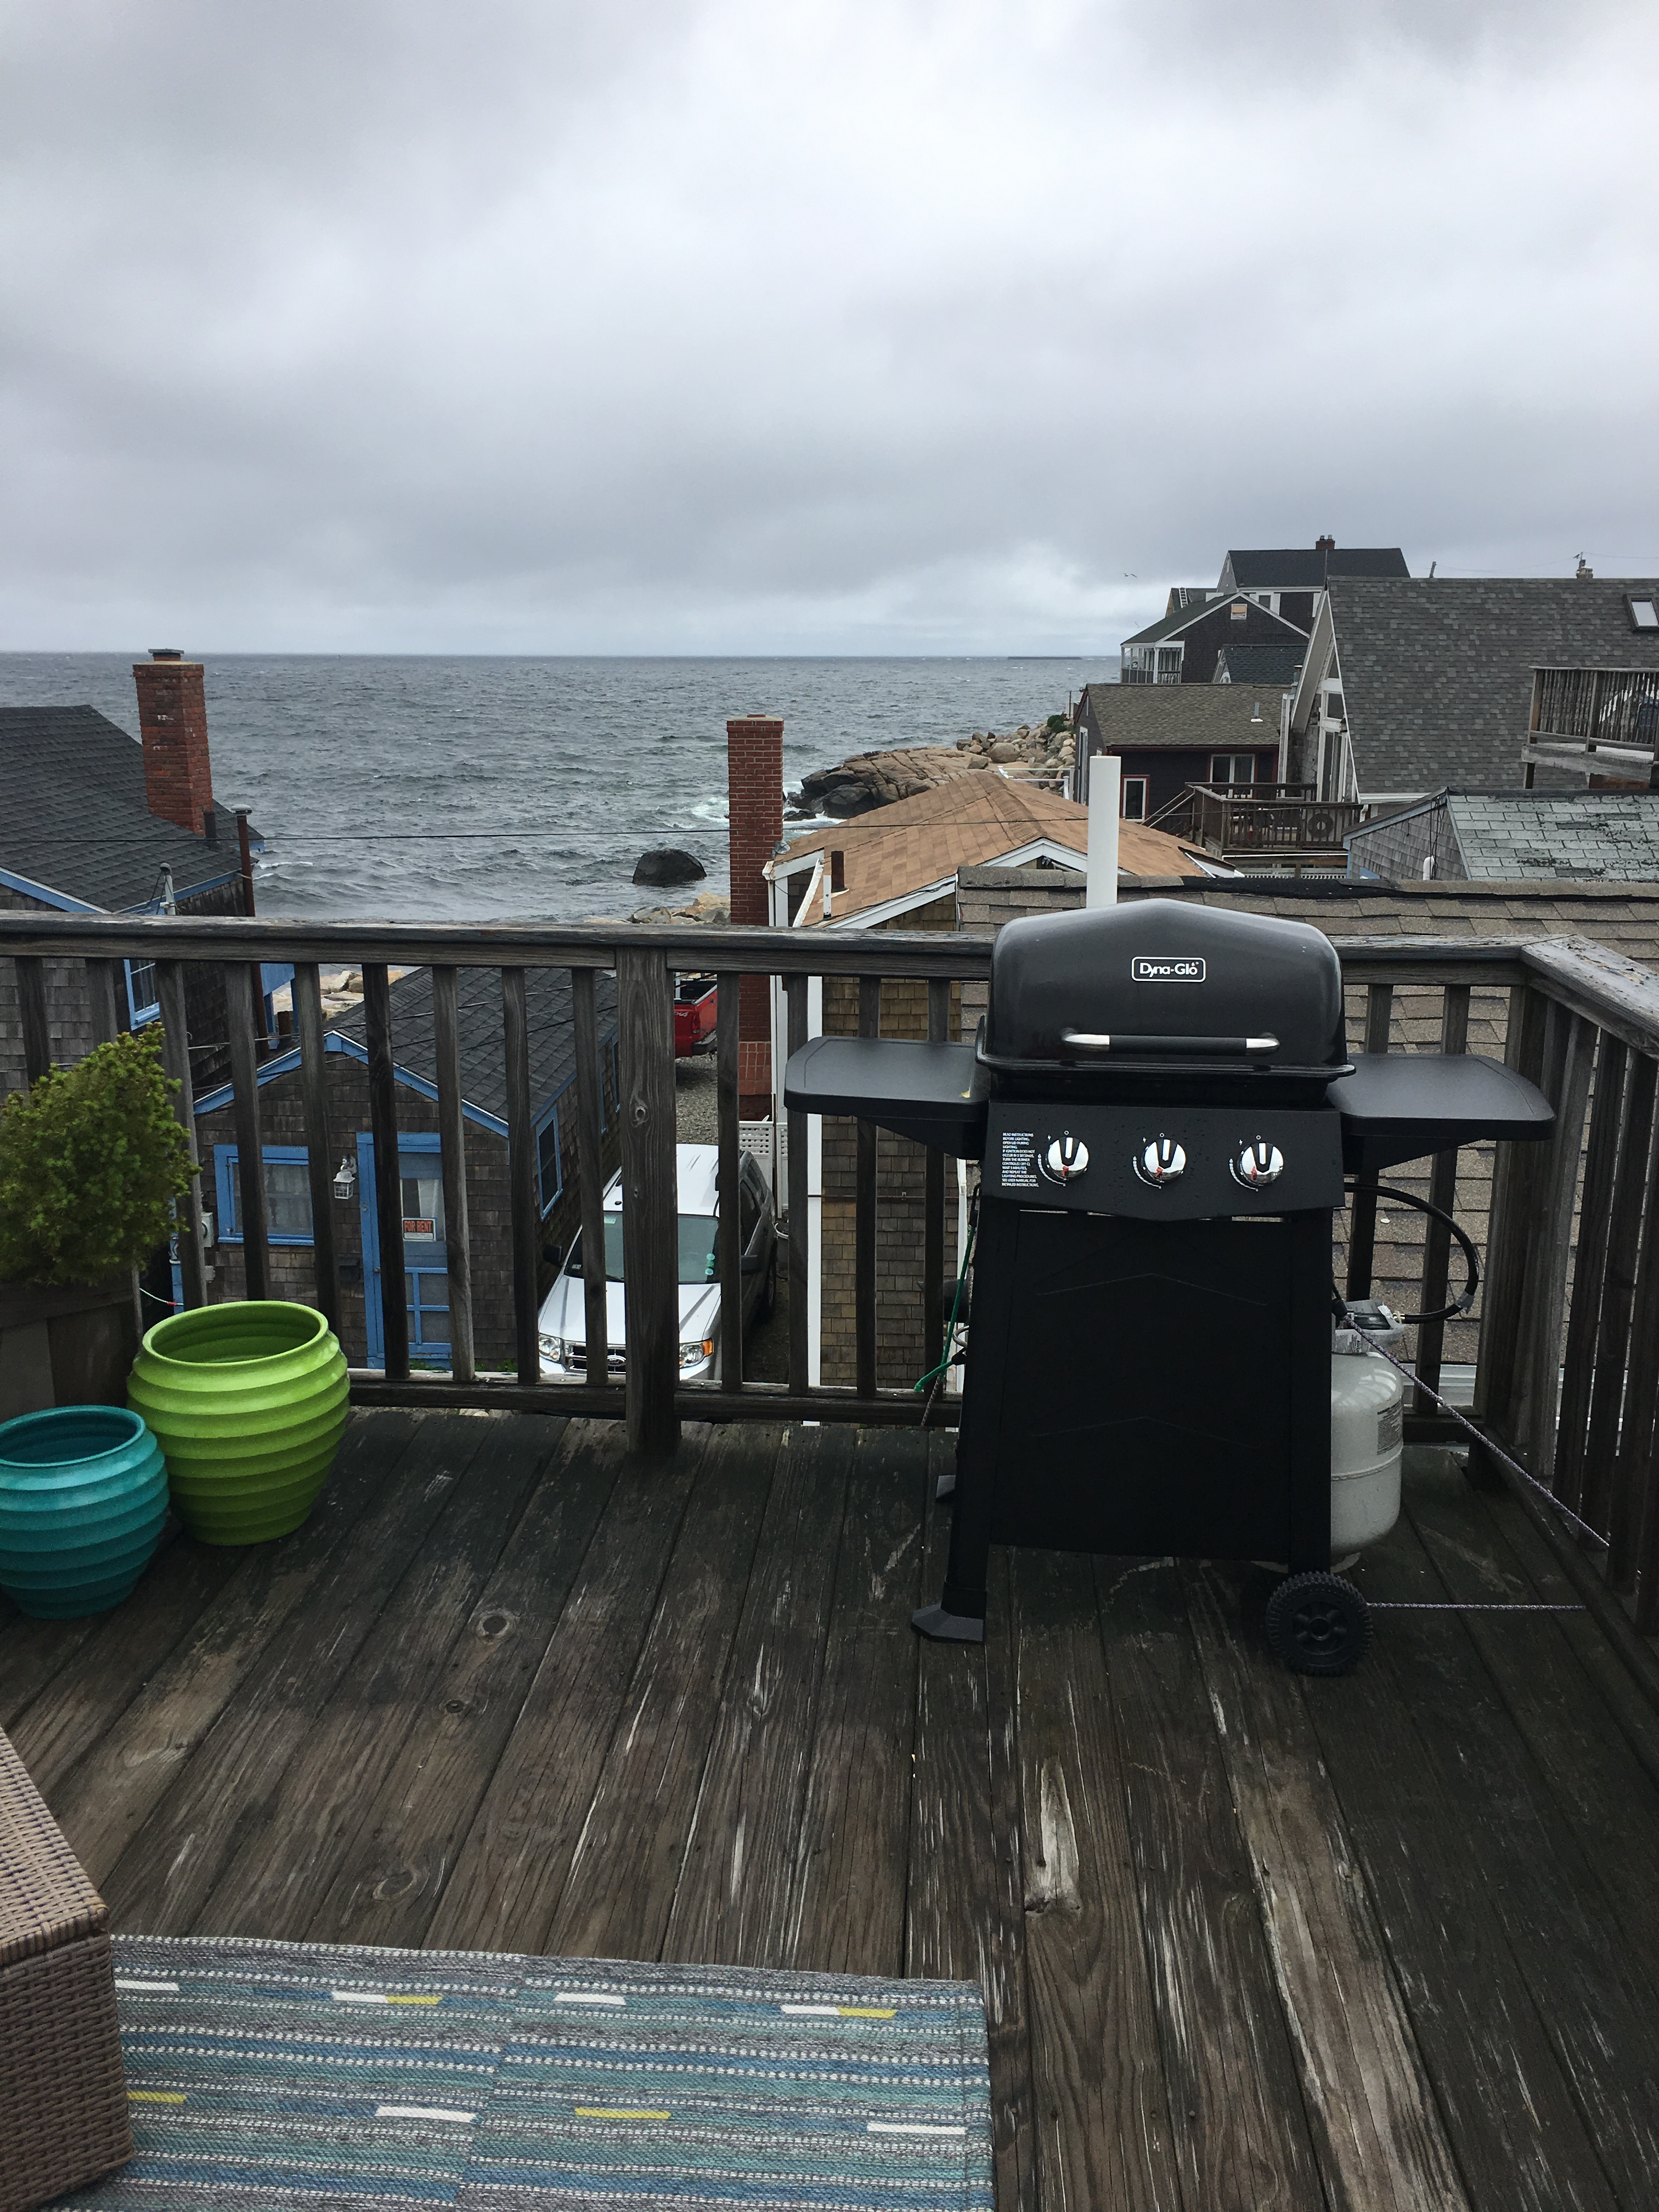 Rockport, MA, with a baby